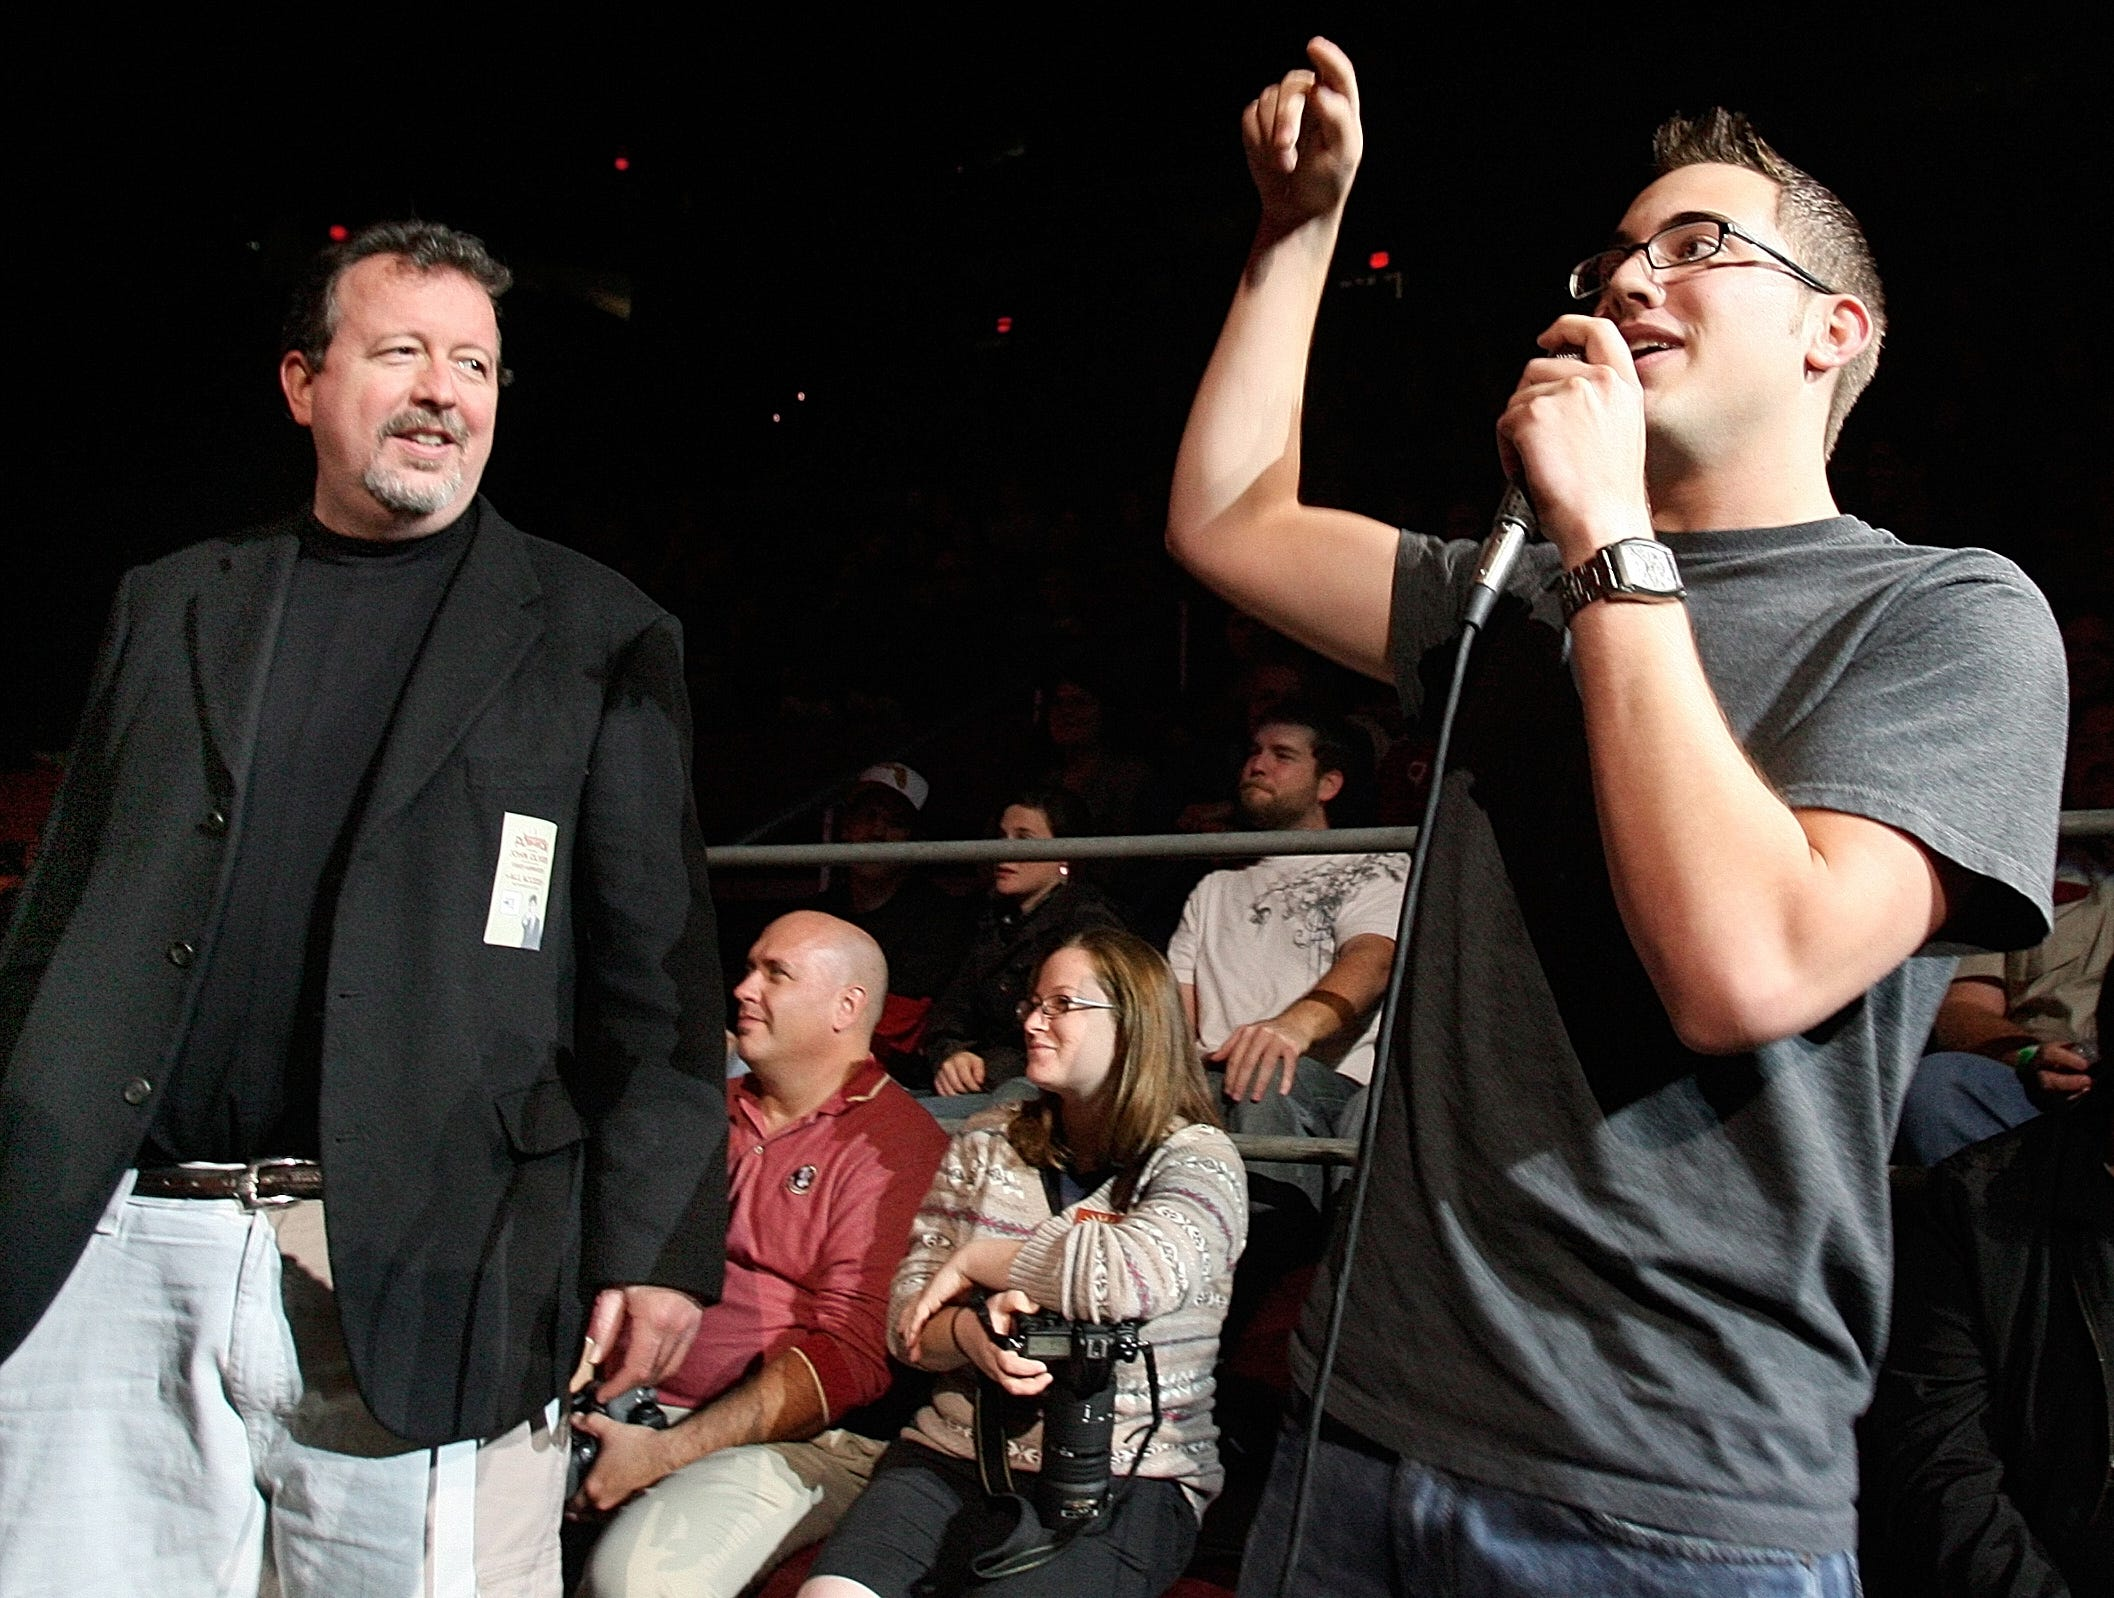 Tallahassee Democrat reporter Mark Hinson listens to an audience member as he asks a question of actor, comedian and musician Fred Armisen, a cast member on Saturday Night Live, who was performing during the FSU Pow Wow.